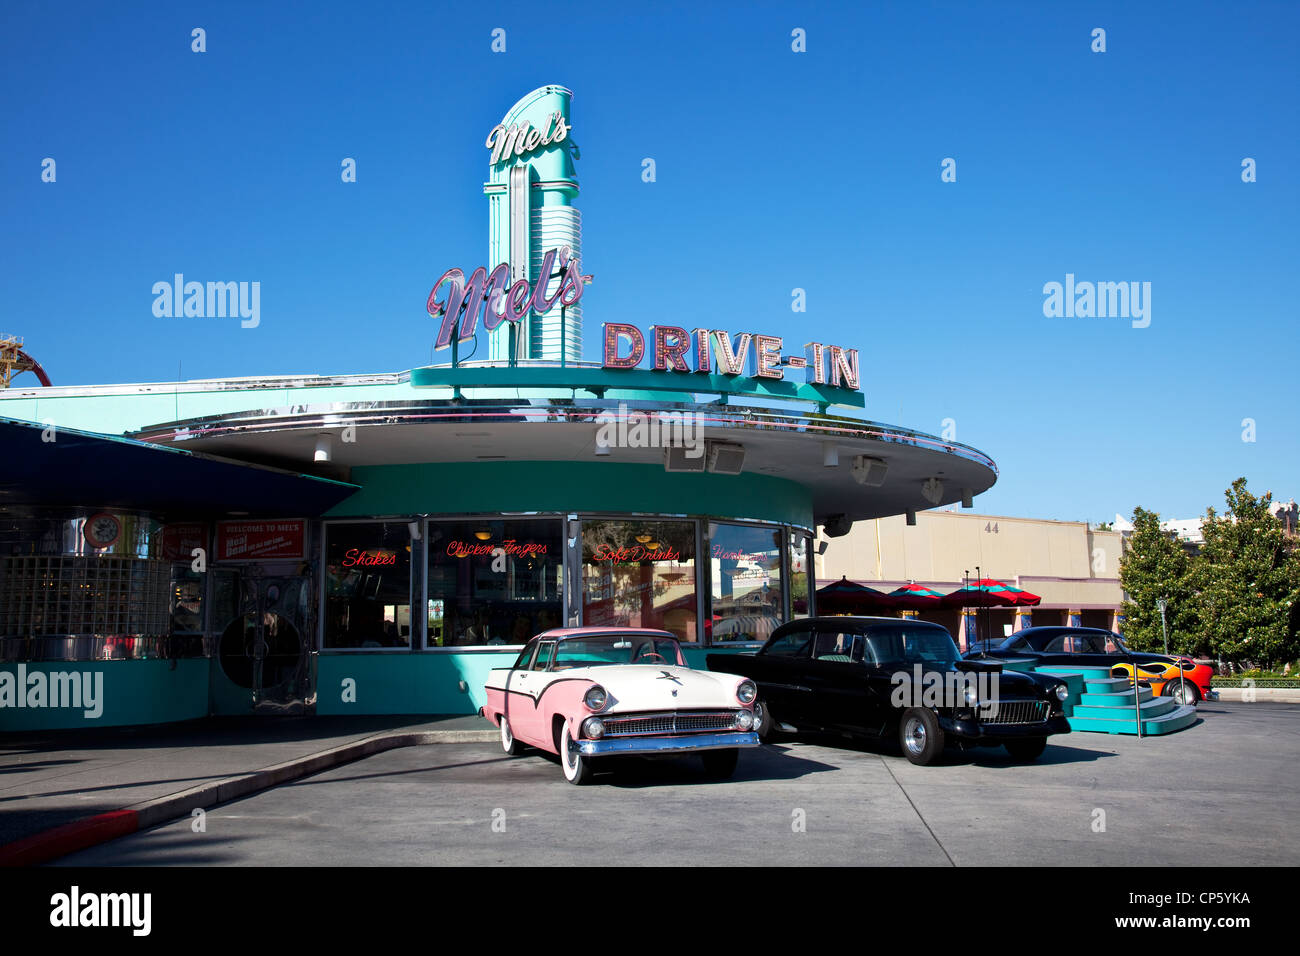 Mets drive-in at Disney's Hollywood Studios - Stock Image